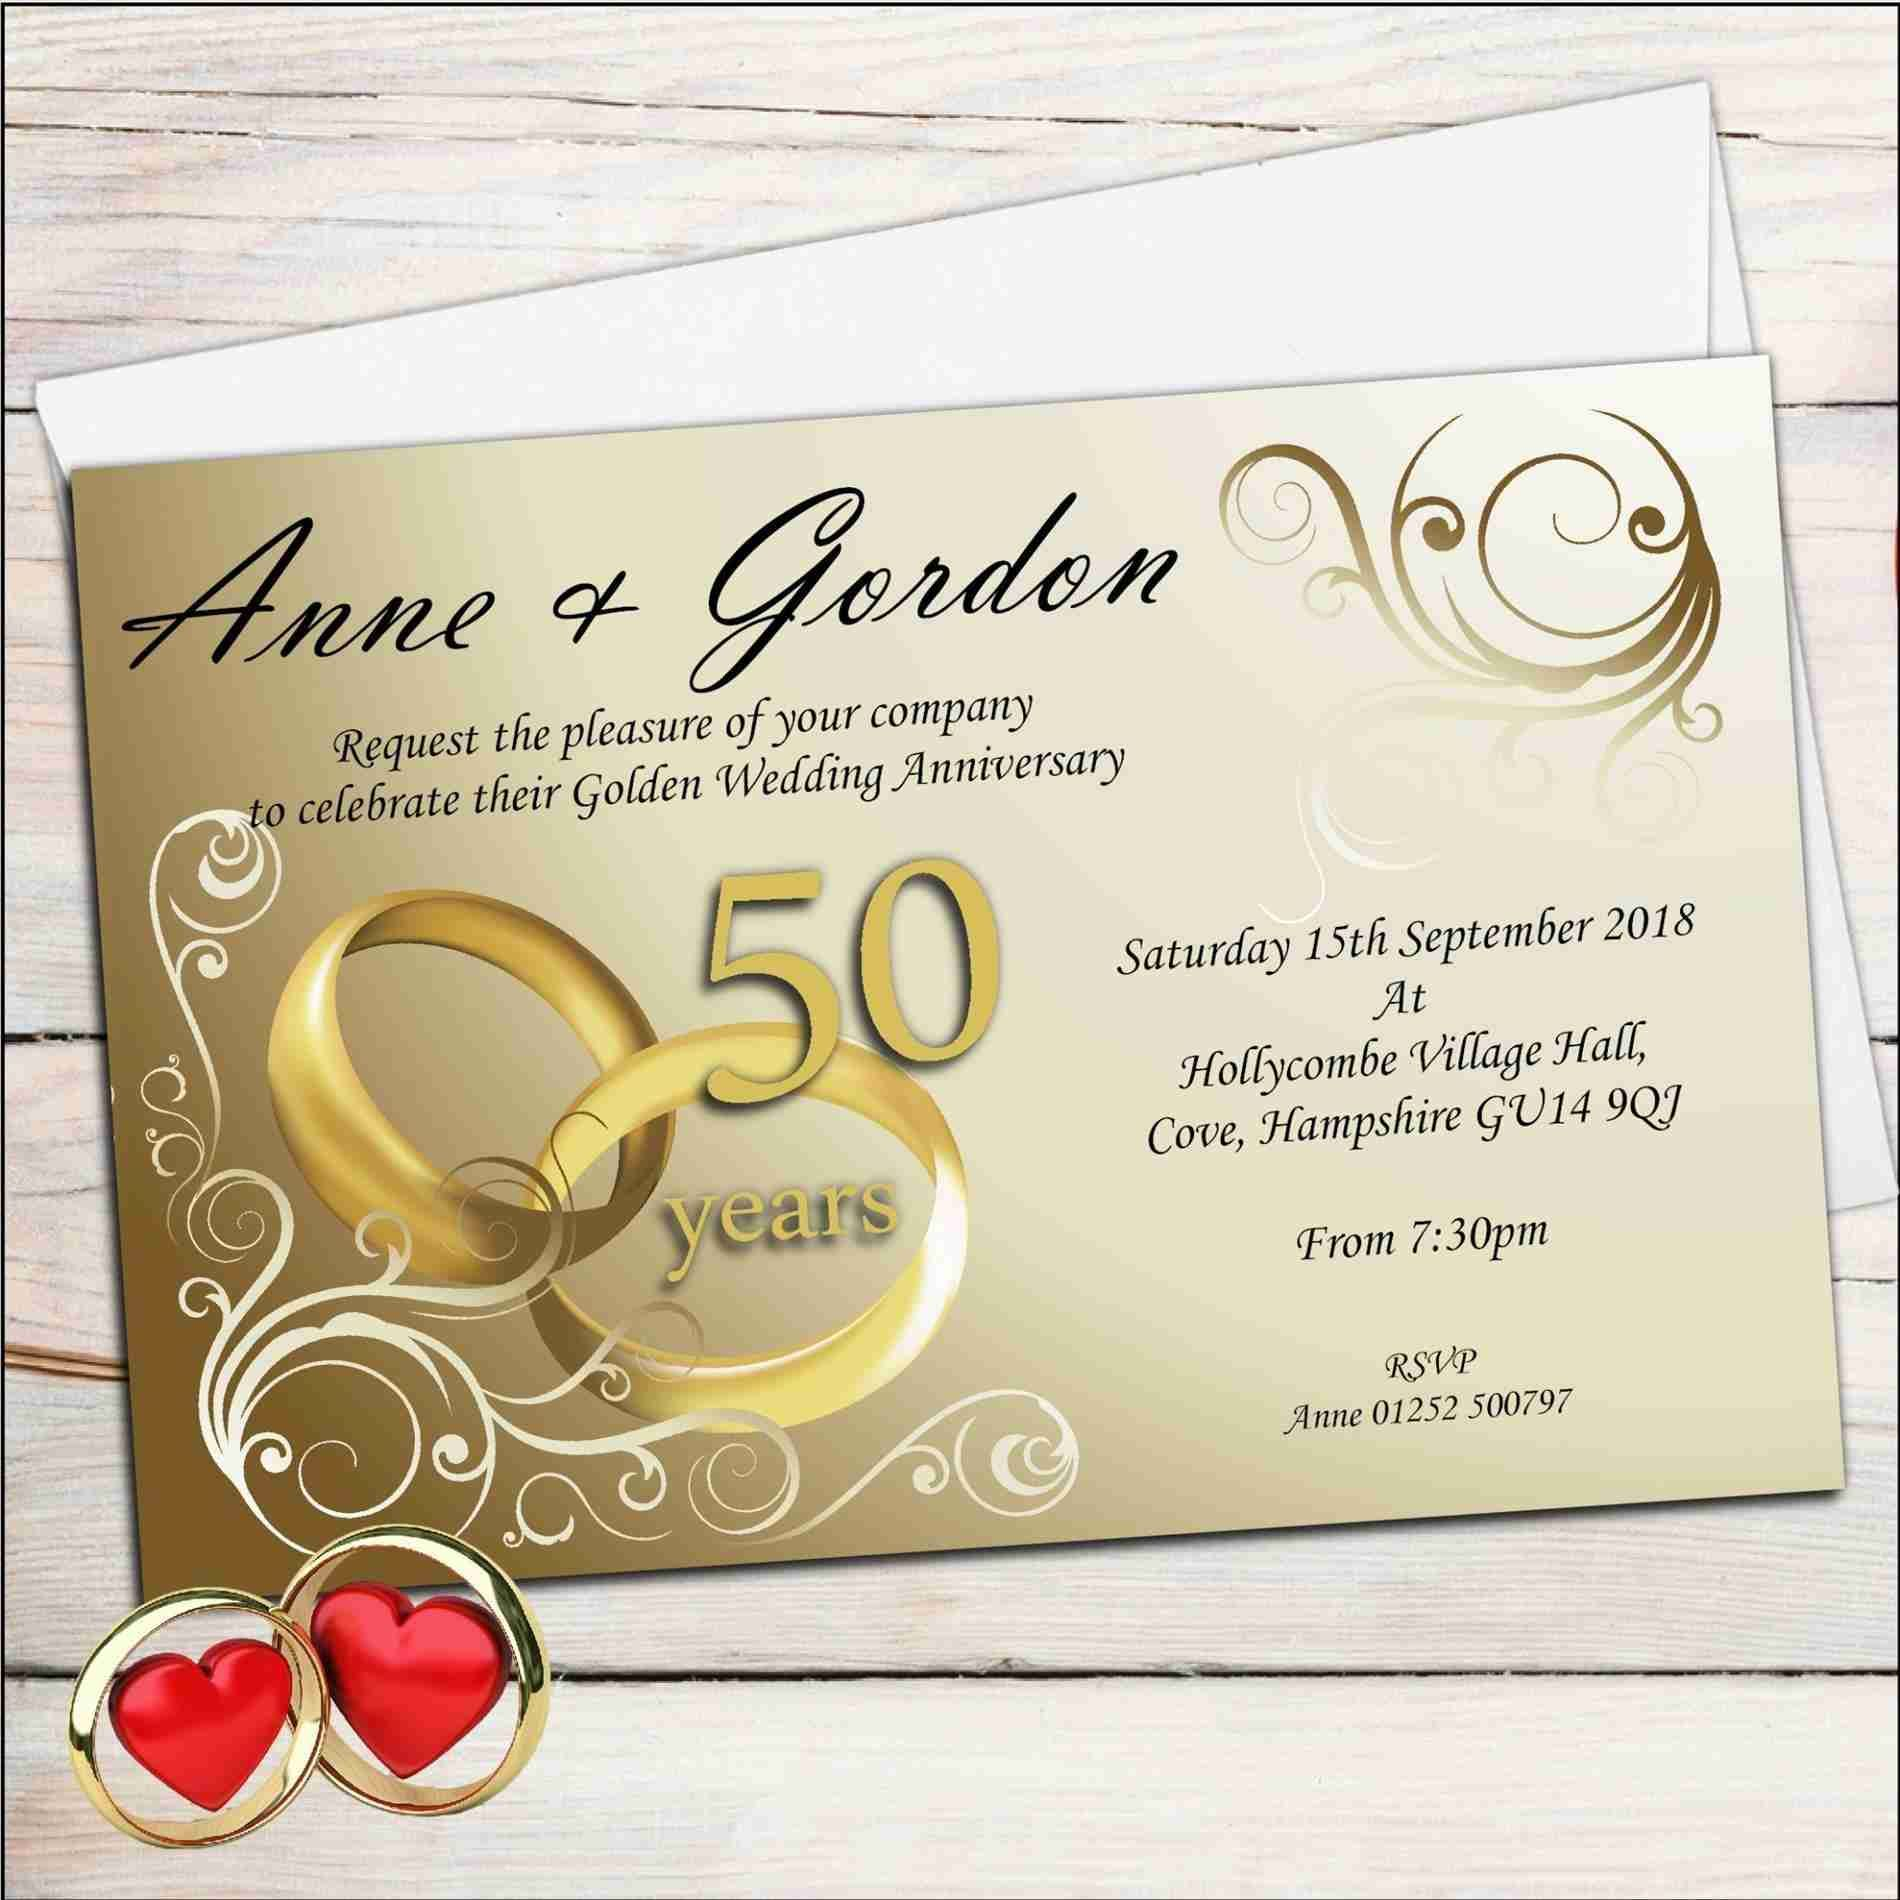 New Post wedding ring images for invitations   Weddings   Pinterest ...